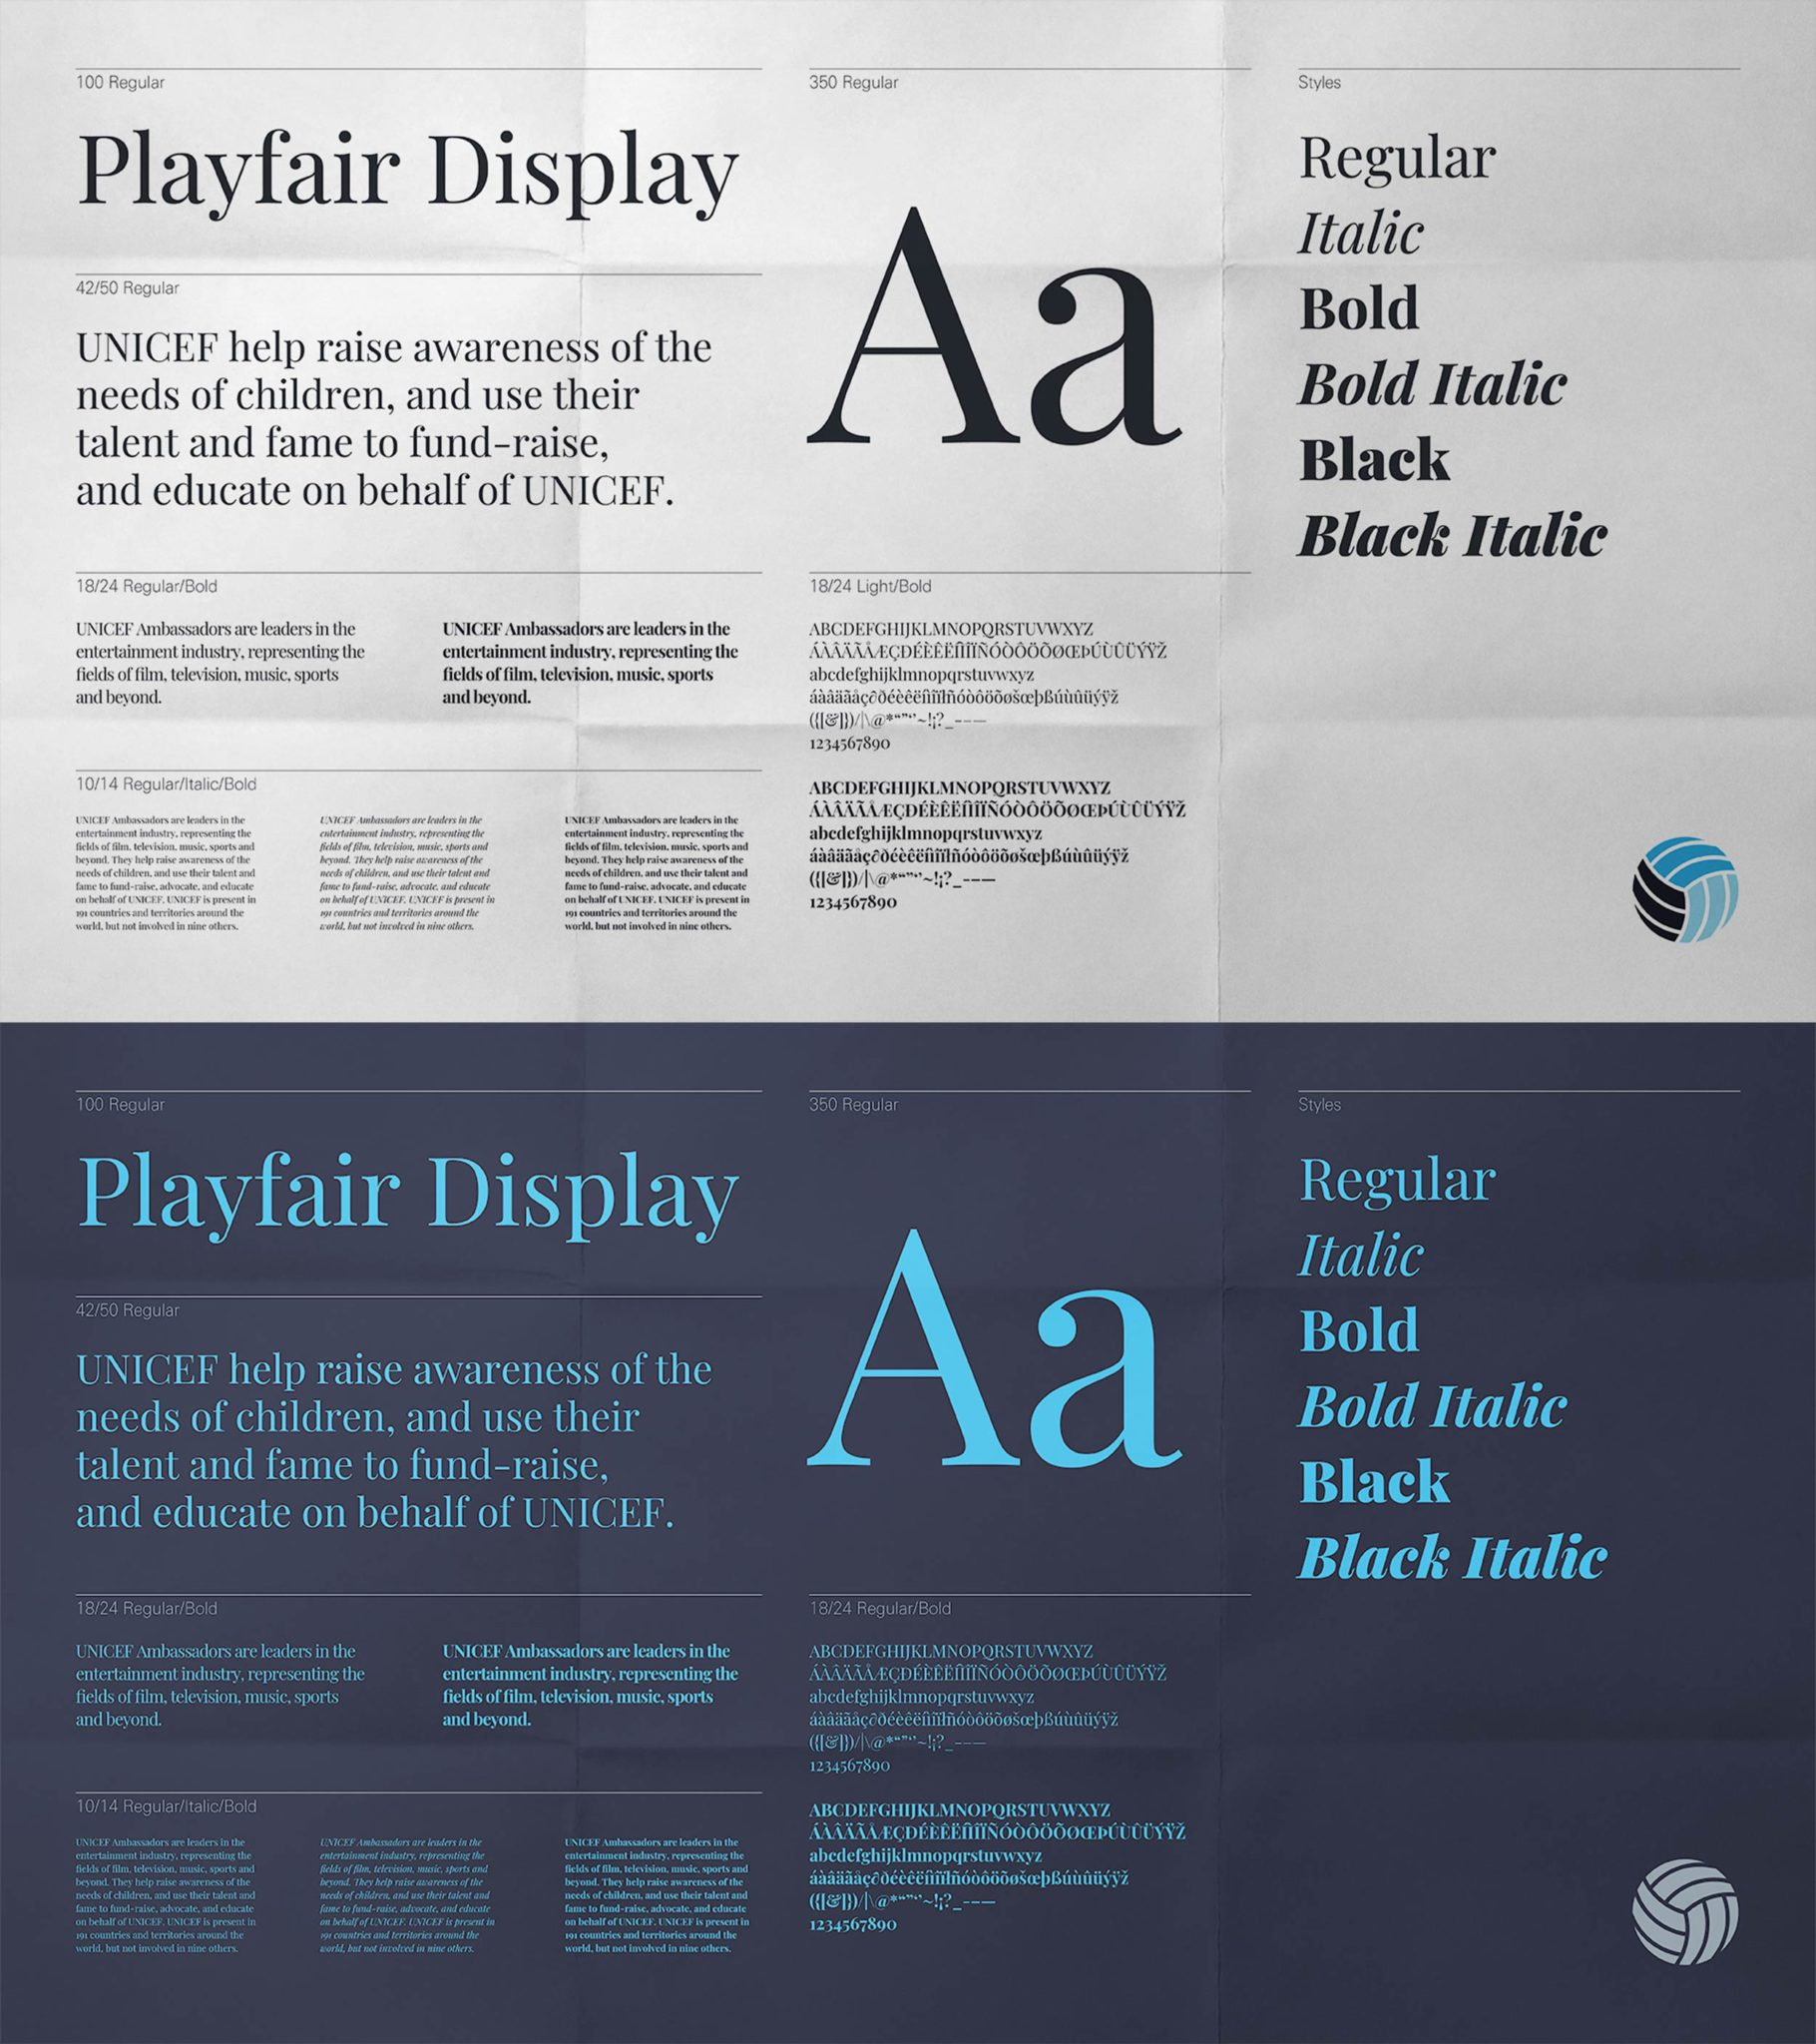 Showcasing the typography used for the branding